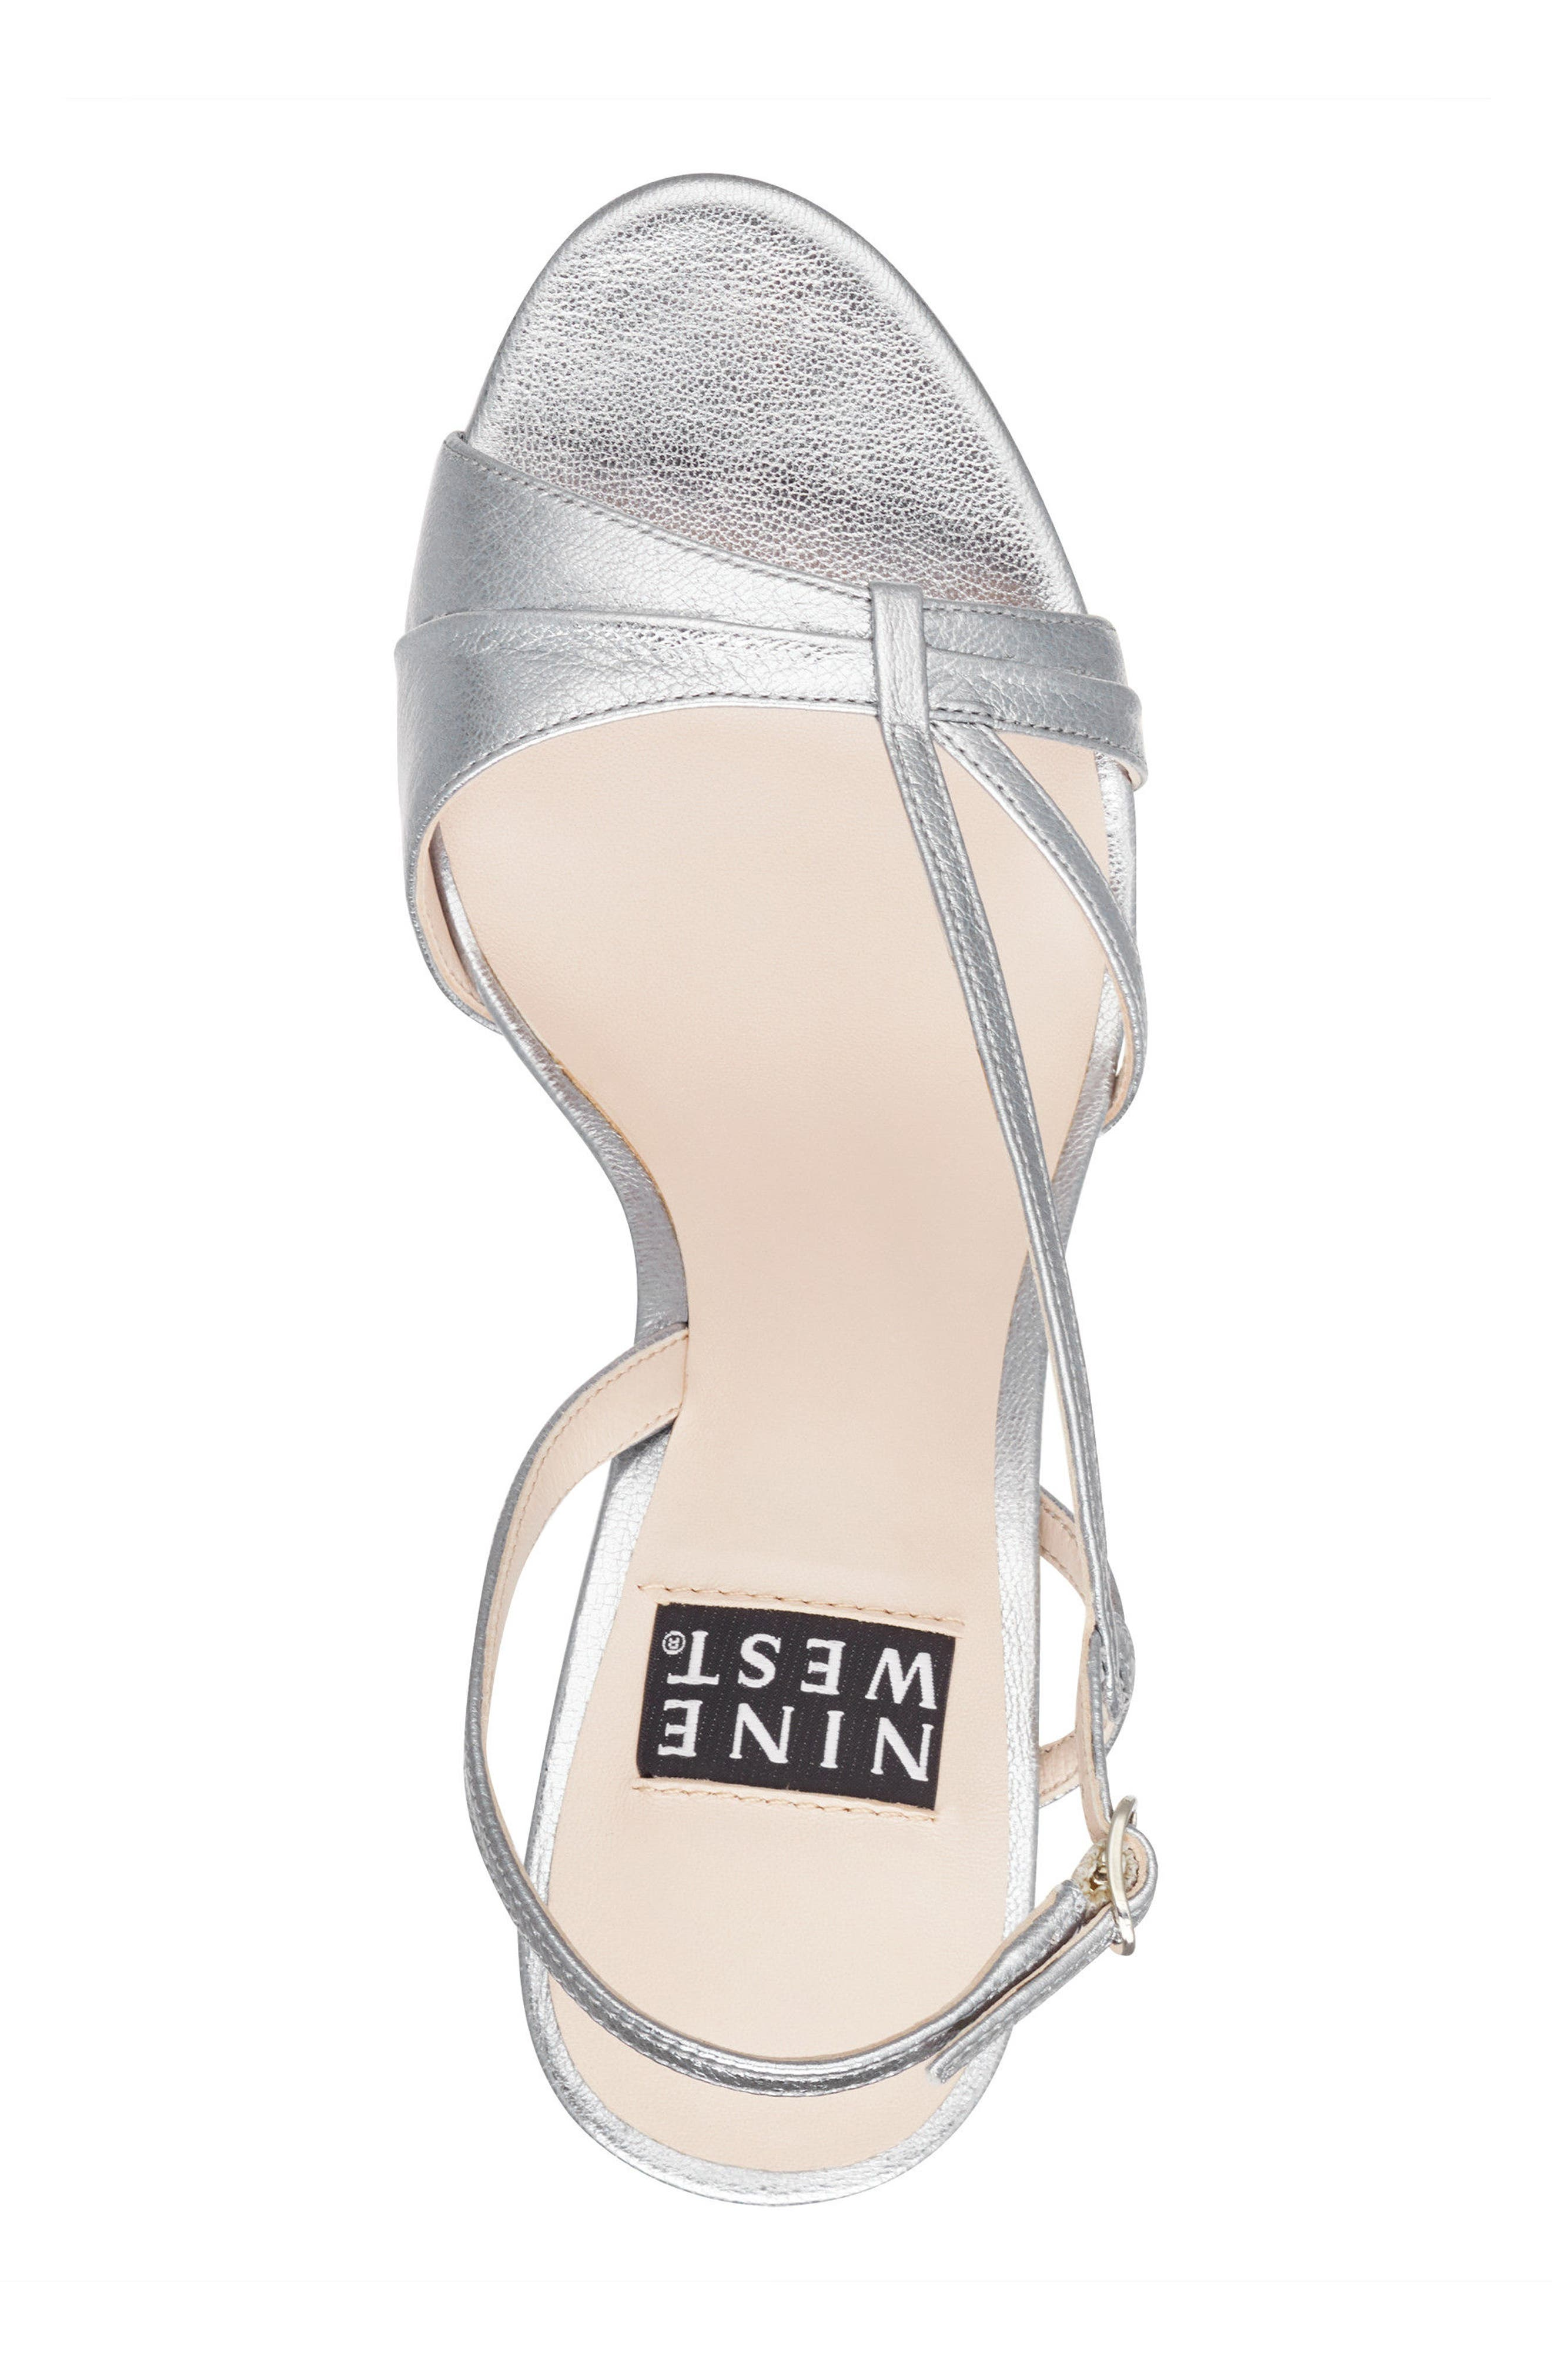 Accolia - 40th Anniversary Capsule Collection Sandal,                             Alternate thumbnail 5, color,                             SILVER LEATHER